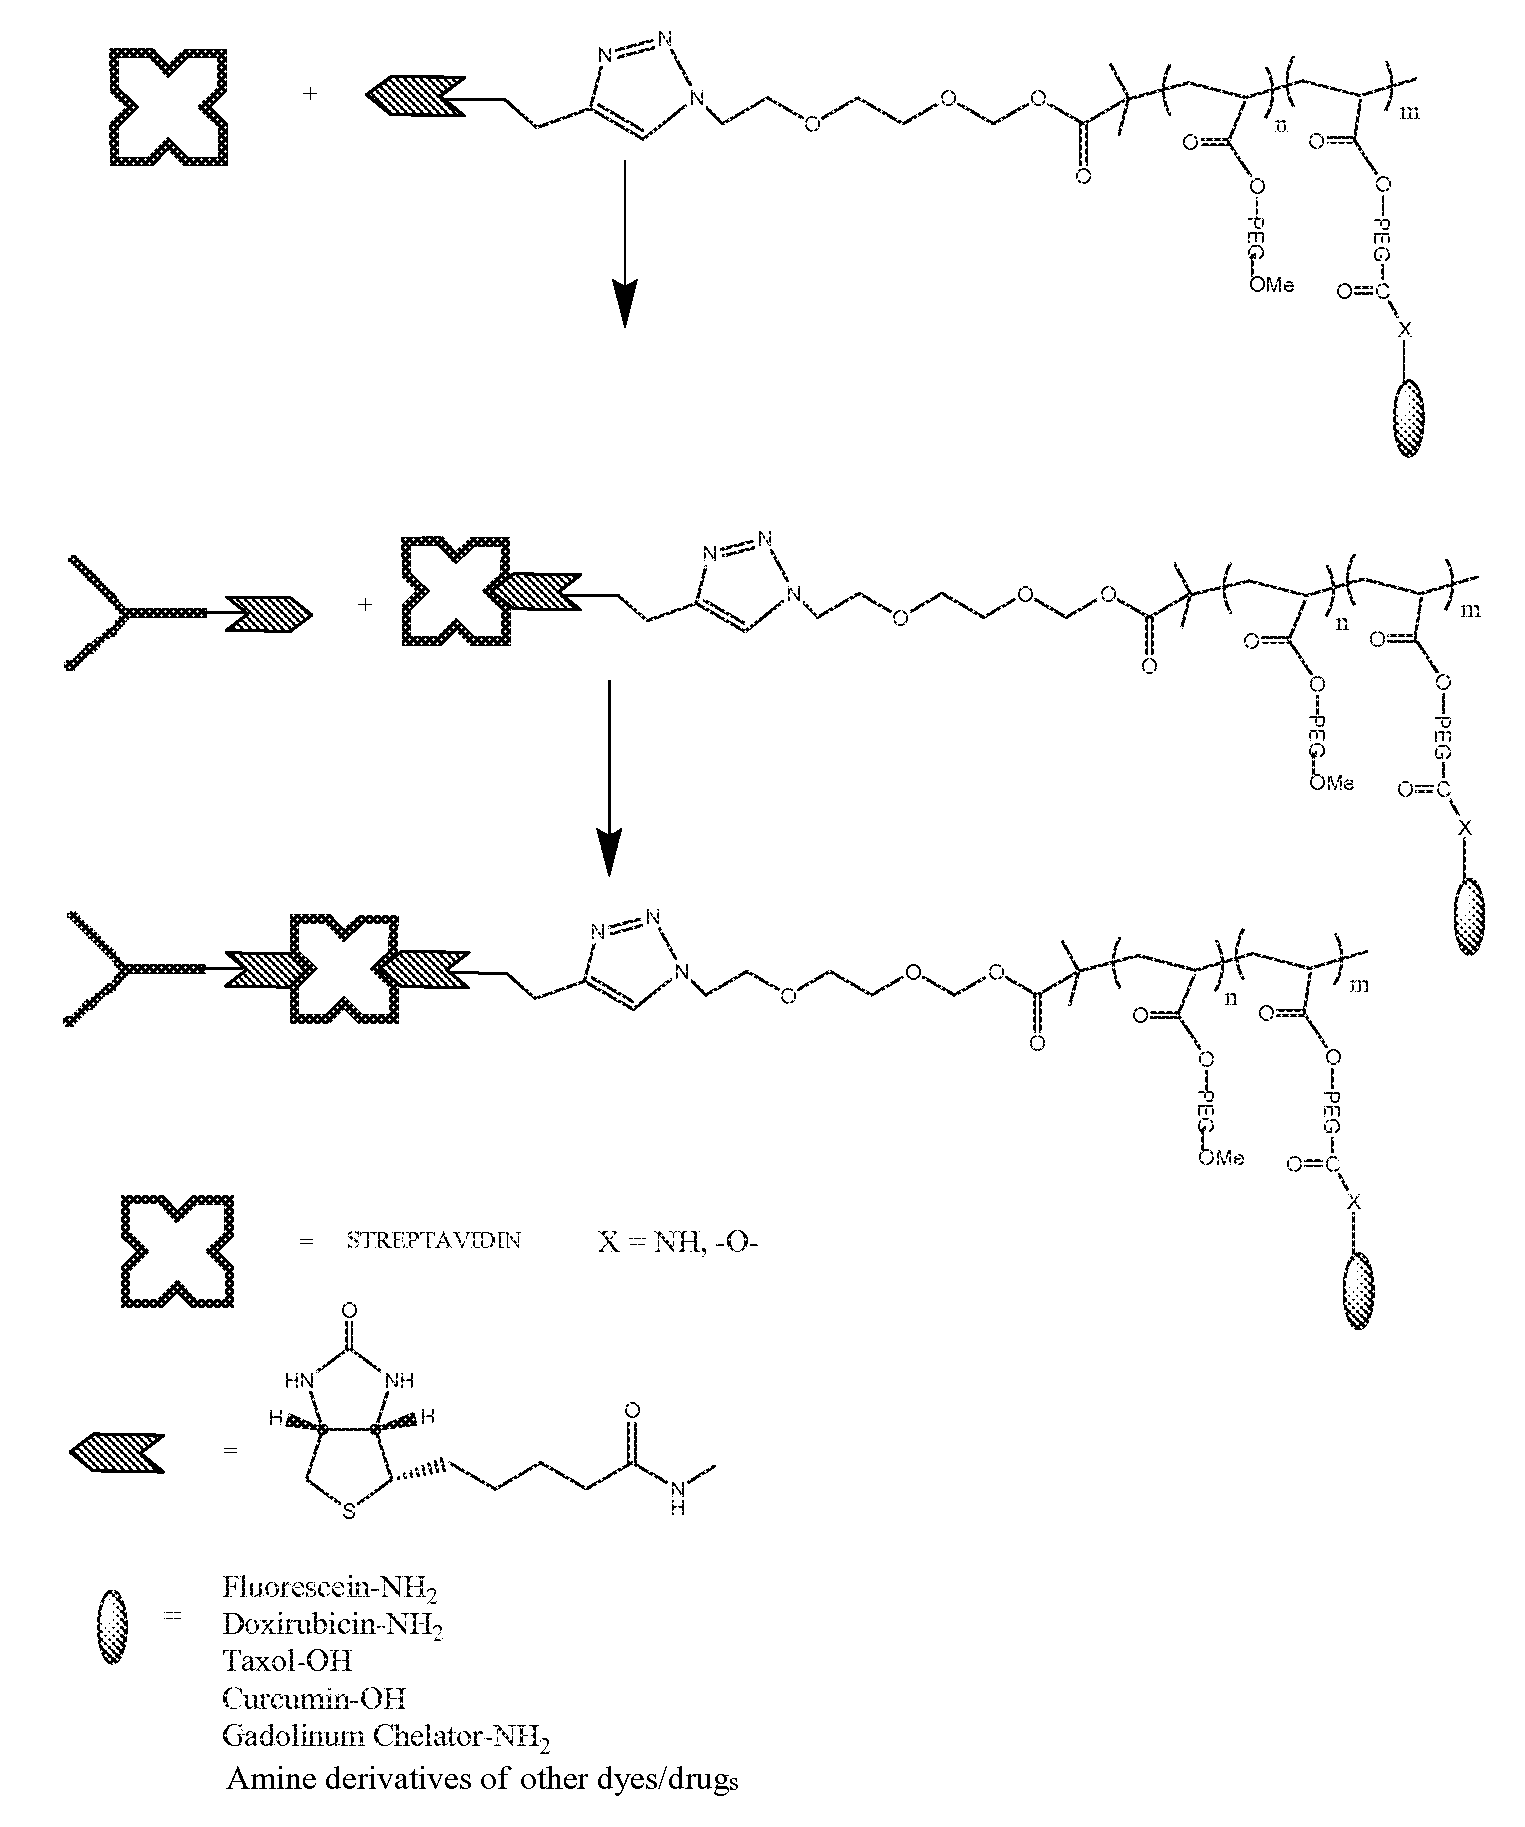 NEW EXAMPLES OF PROTEIN BINDING DRUGS